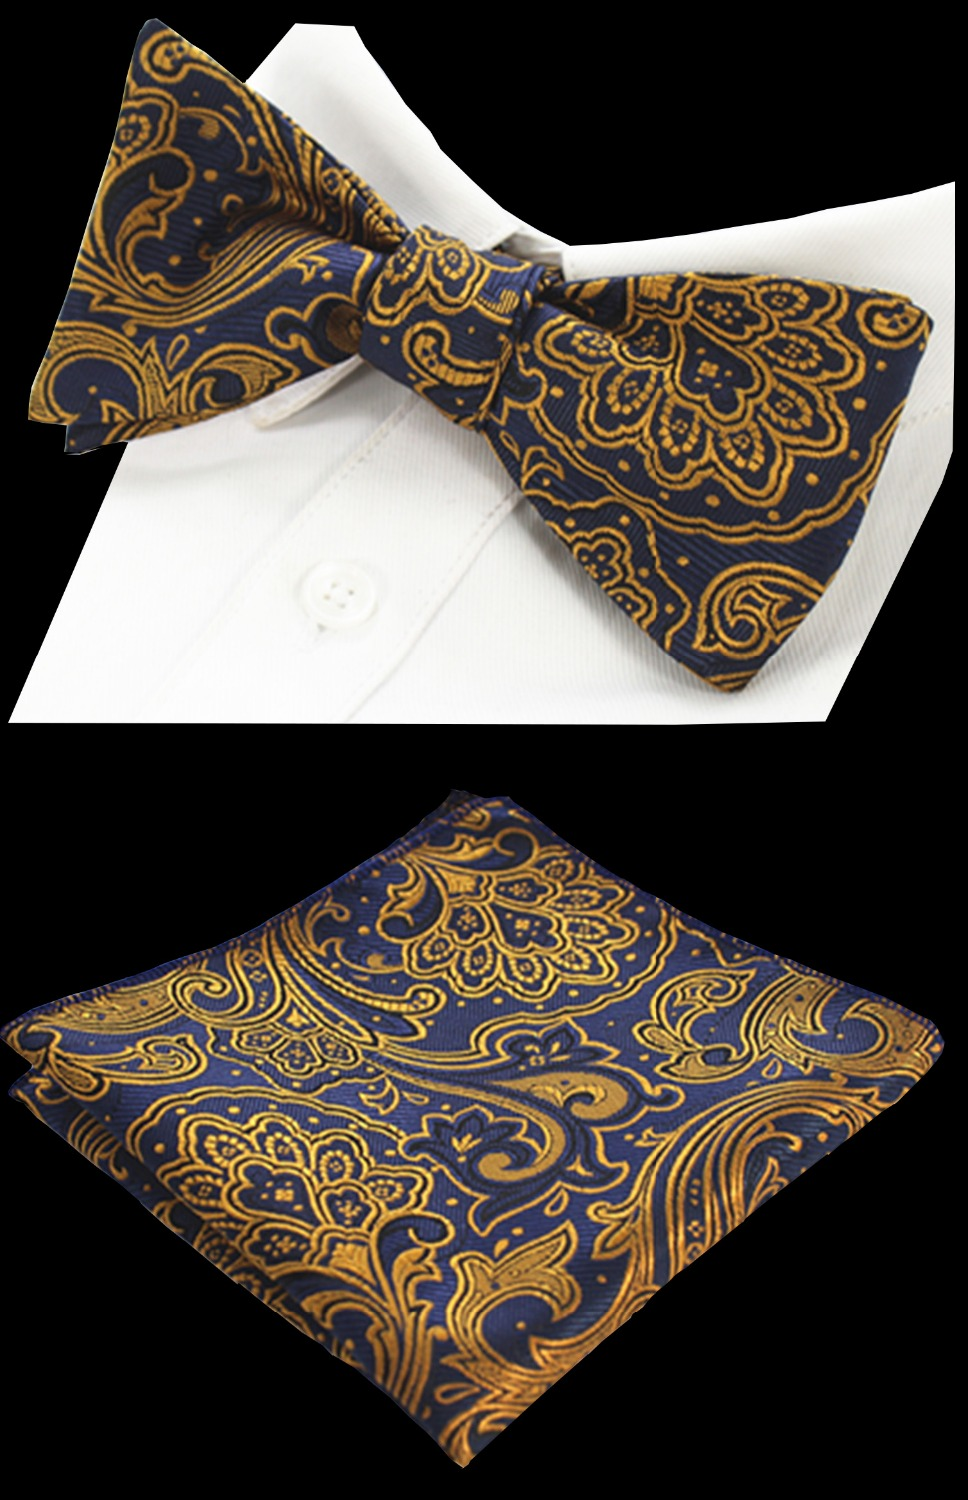 RBOCOTT Paisley Floral 100% Silk Jacquard Woven Bow Ties And Handkerchief Set Self Bowtie Hanky Set For Wedding Party